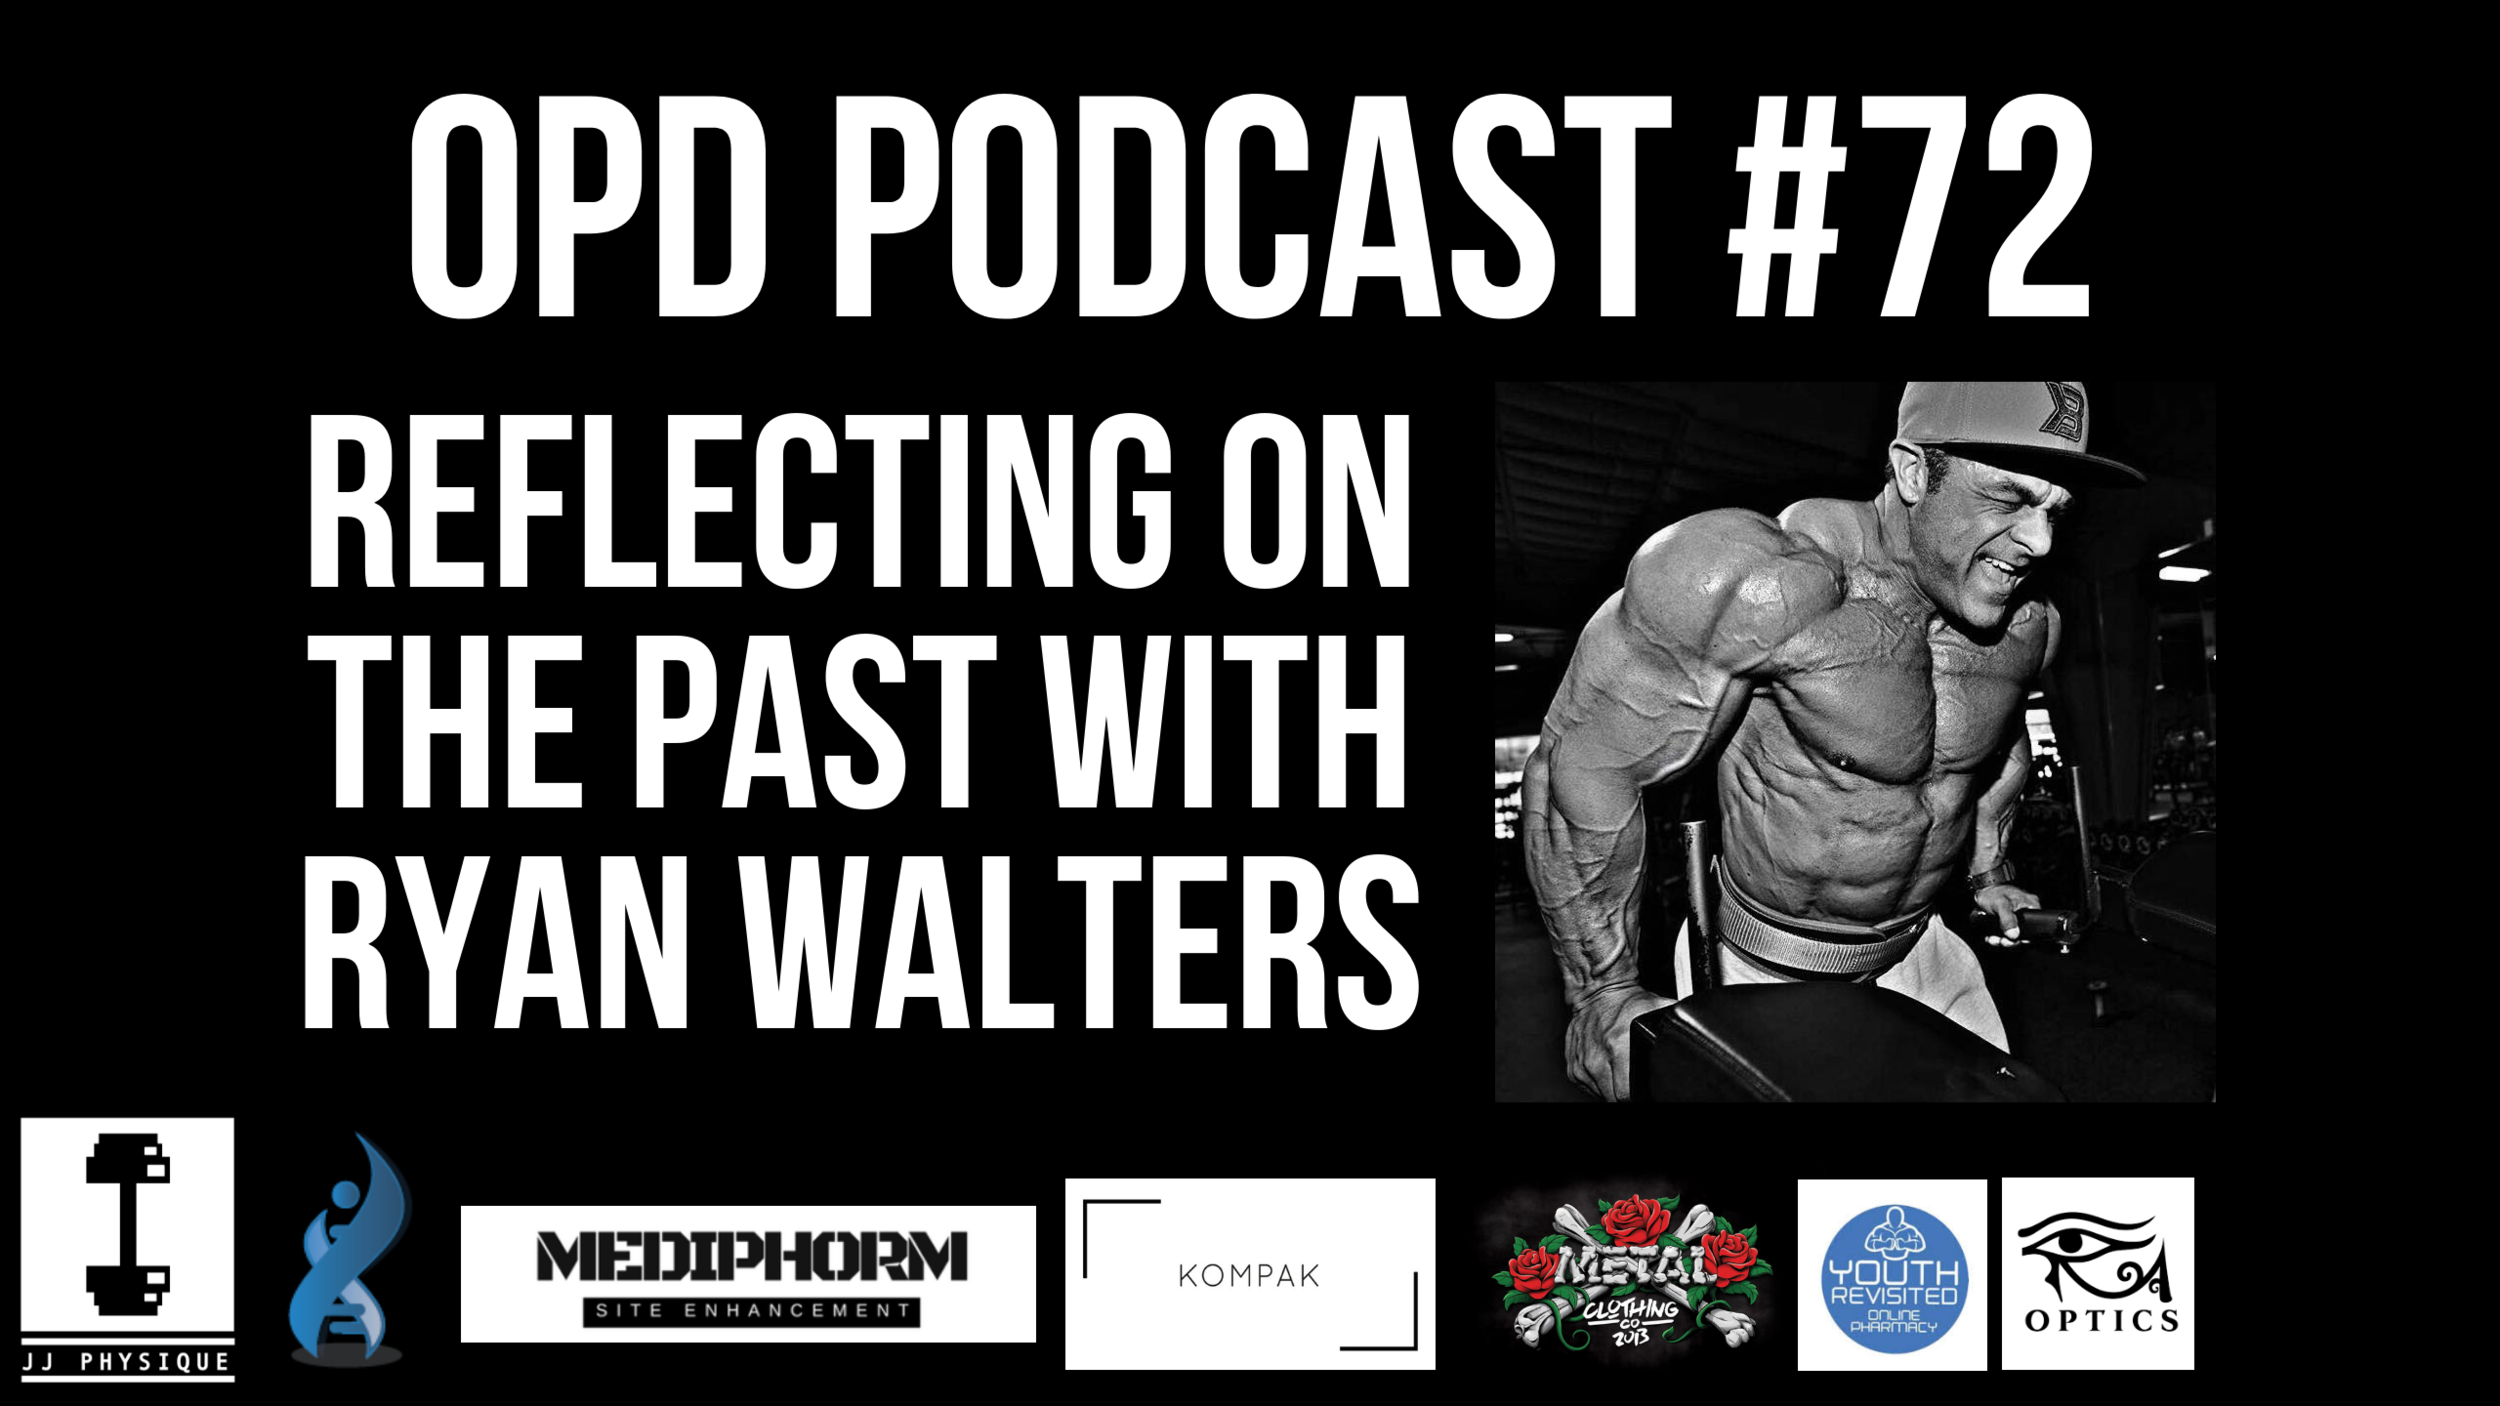 OPTIMAL PHYSIQUE DEVELOPMENTPODCAST (9).png